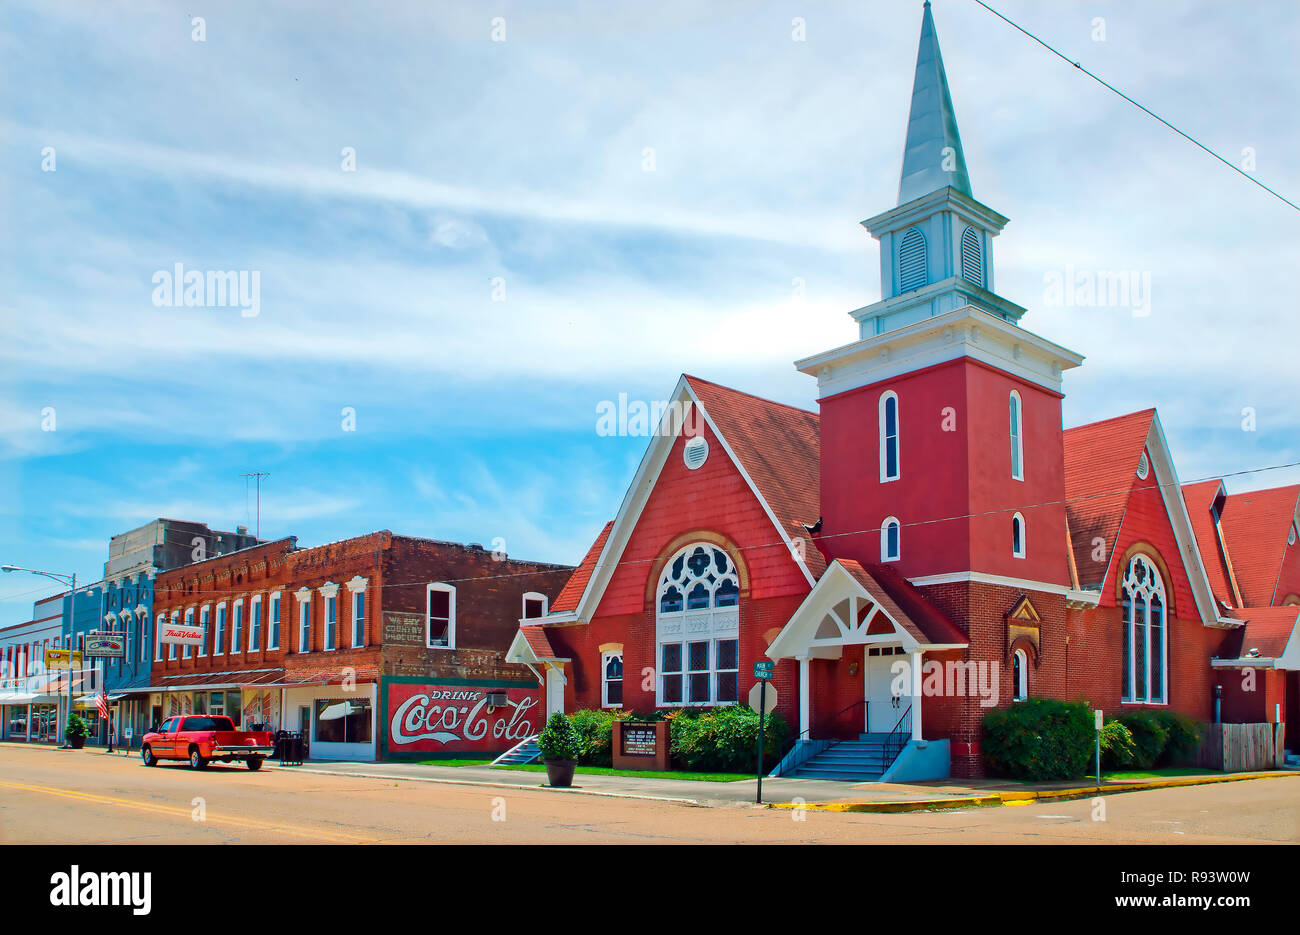 First Presbyterian Church, established in 1843, is located on Main Street in Water Valley, Mississippi. - Stock Image